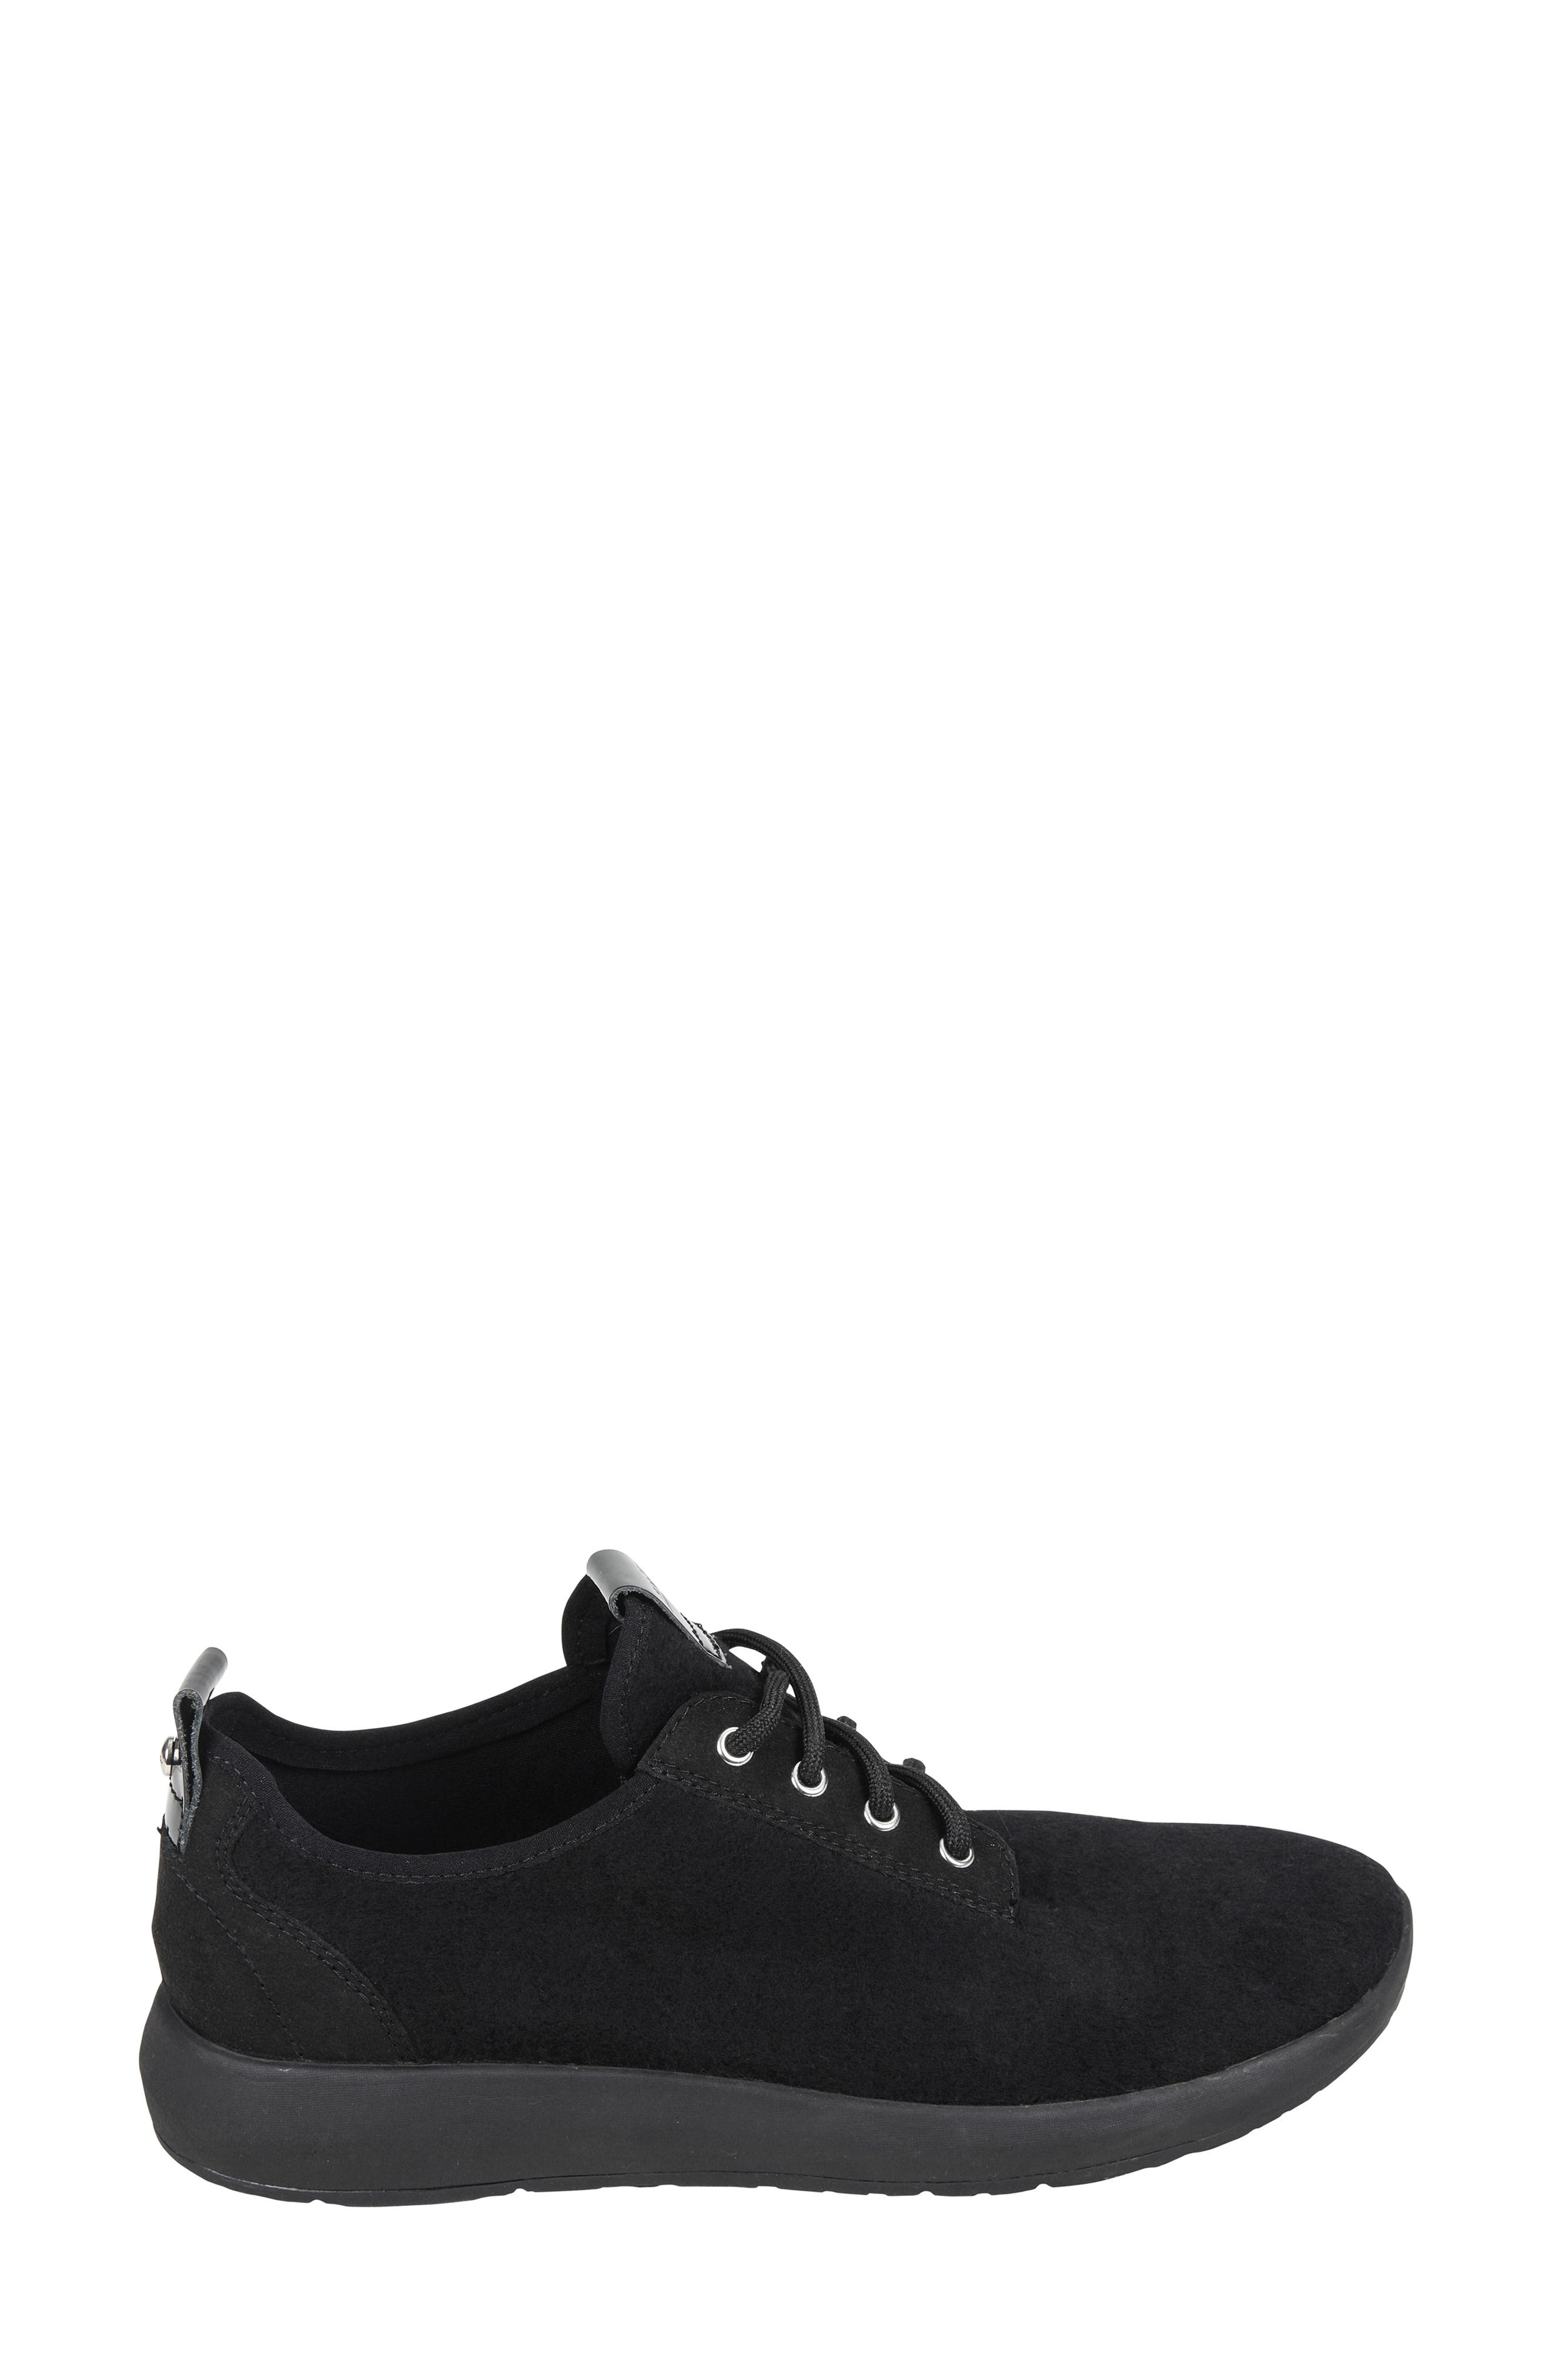 Boomer Sneaker,                             Alternate thumbnail 3, color,                             BLACK FABRIC